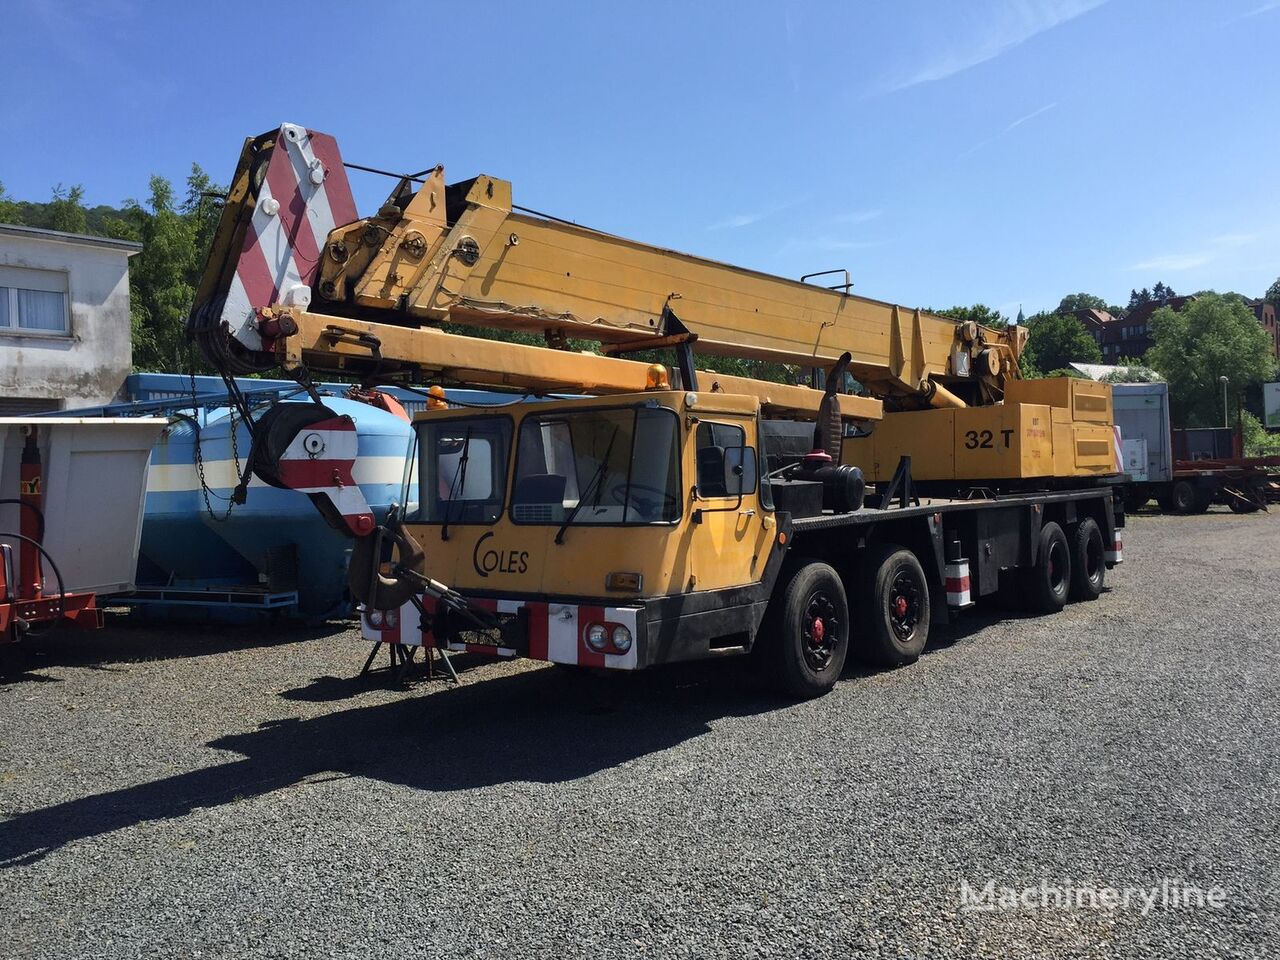 Coles 32 35 to sep motor 4 achsen mobile cranes for sale for Motors used in cranes